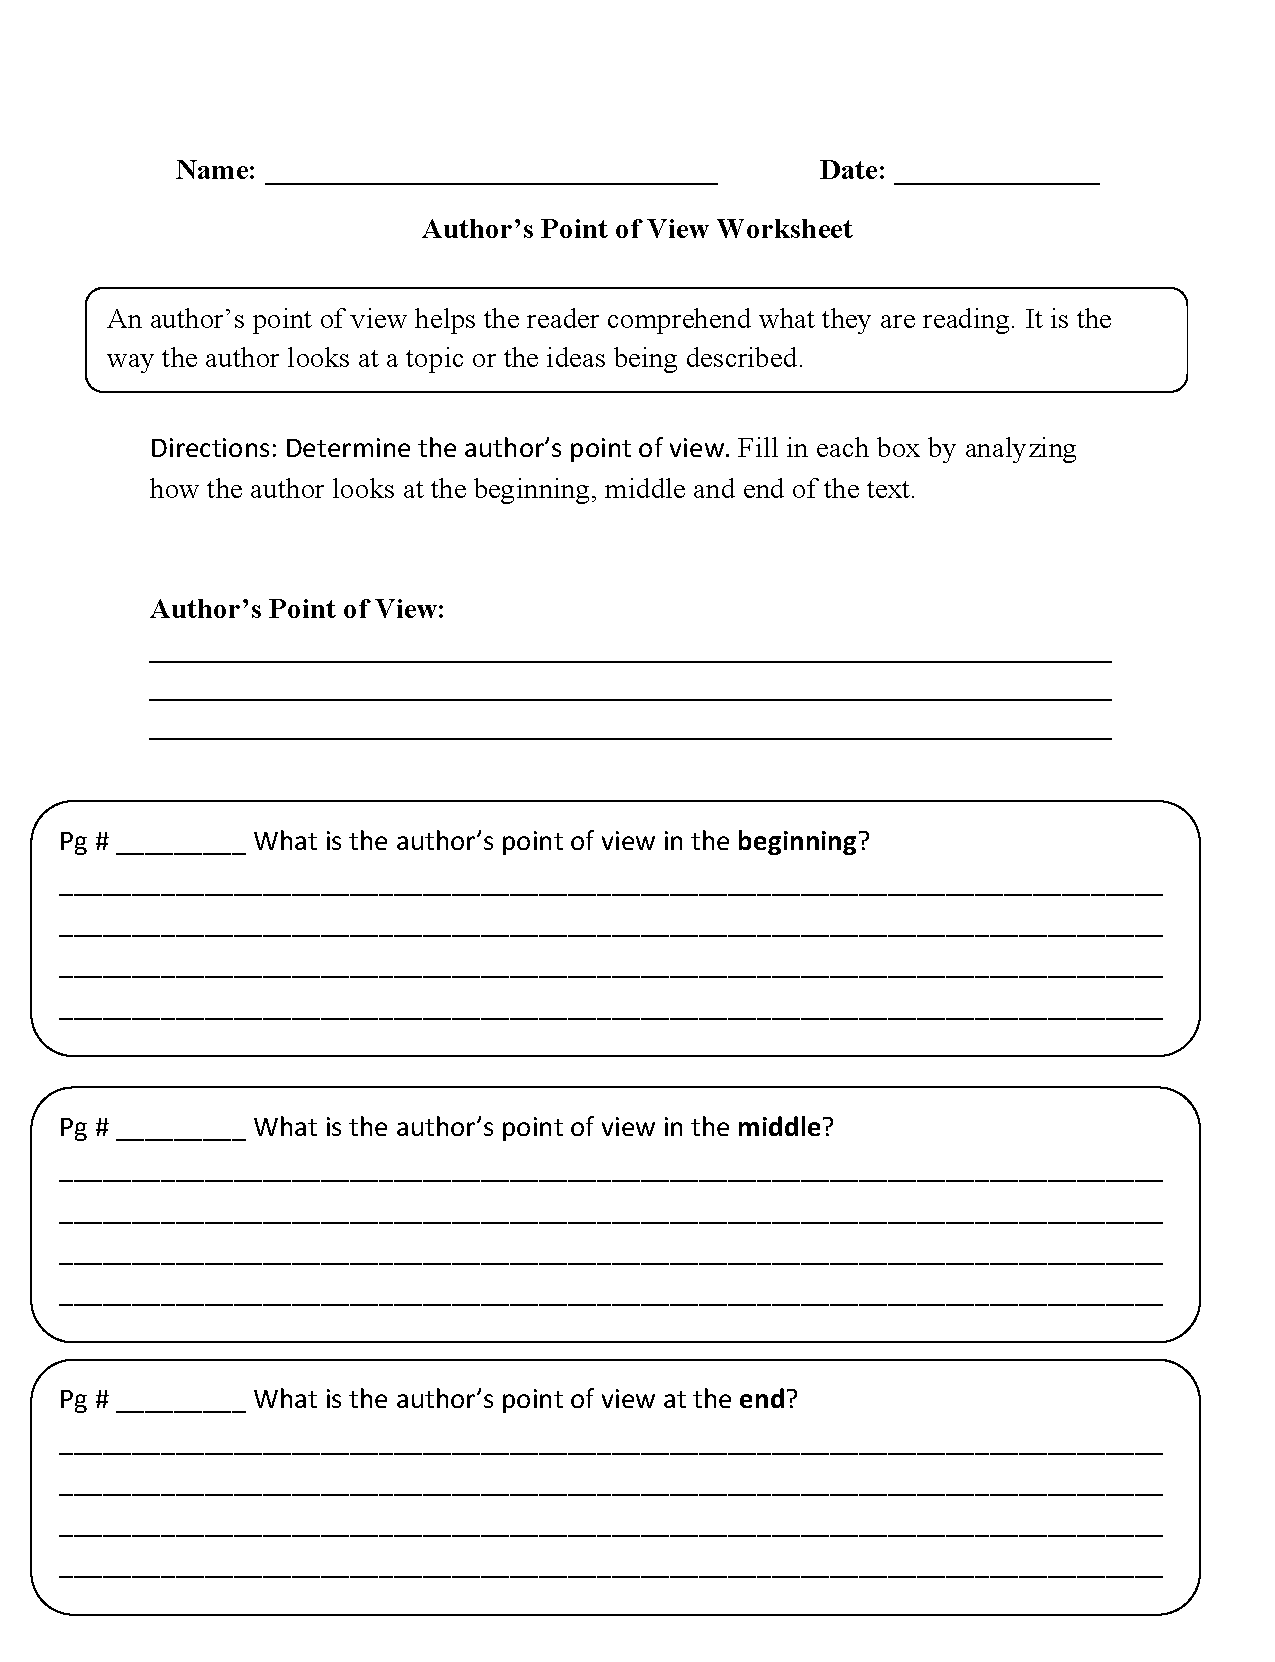 Proatmealus  Unique Englishlinxcom  Point Of View Worksheets With Excellent Point Of View Worksheets With Alluring Bird Worksheets Also Facts And Opinions Worksheet In Addition Graphing Inequalities On A Coordinate Plane Worksheet And Transitional Words And Phrases Worksheet As Well As Solving Addition And Subtraction Equations Worksheets Additionally Grammar Worksheets For Th Grade From Englishlinxcom With Proatmealus  Excellent Englishlinxcom  Point Of View Worksheets With Alluring Point Of View Worksheets And Unique Bird Worksheets Also Facts And Opinions Worksheet In Addition Graphing Inequalities On A Coordinate Plane Worksheet From Englishlinxcom